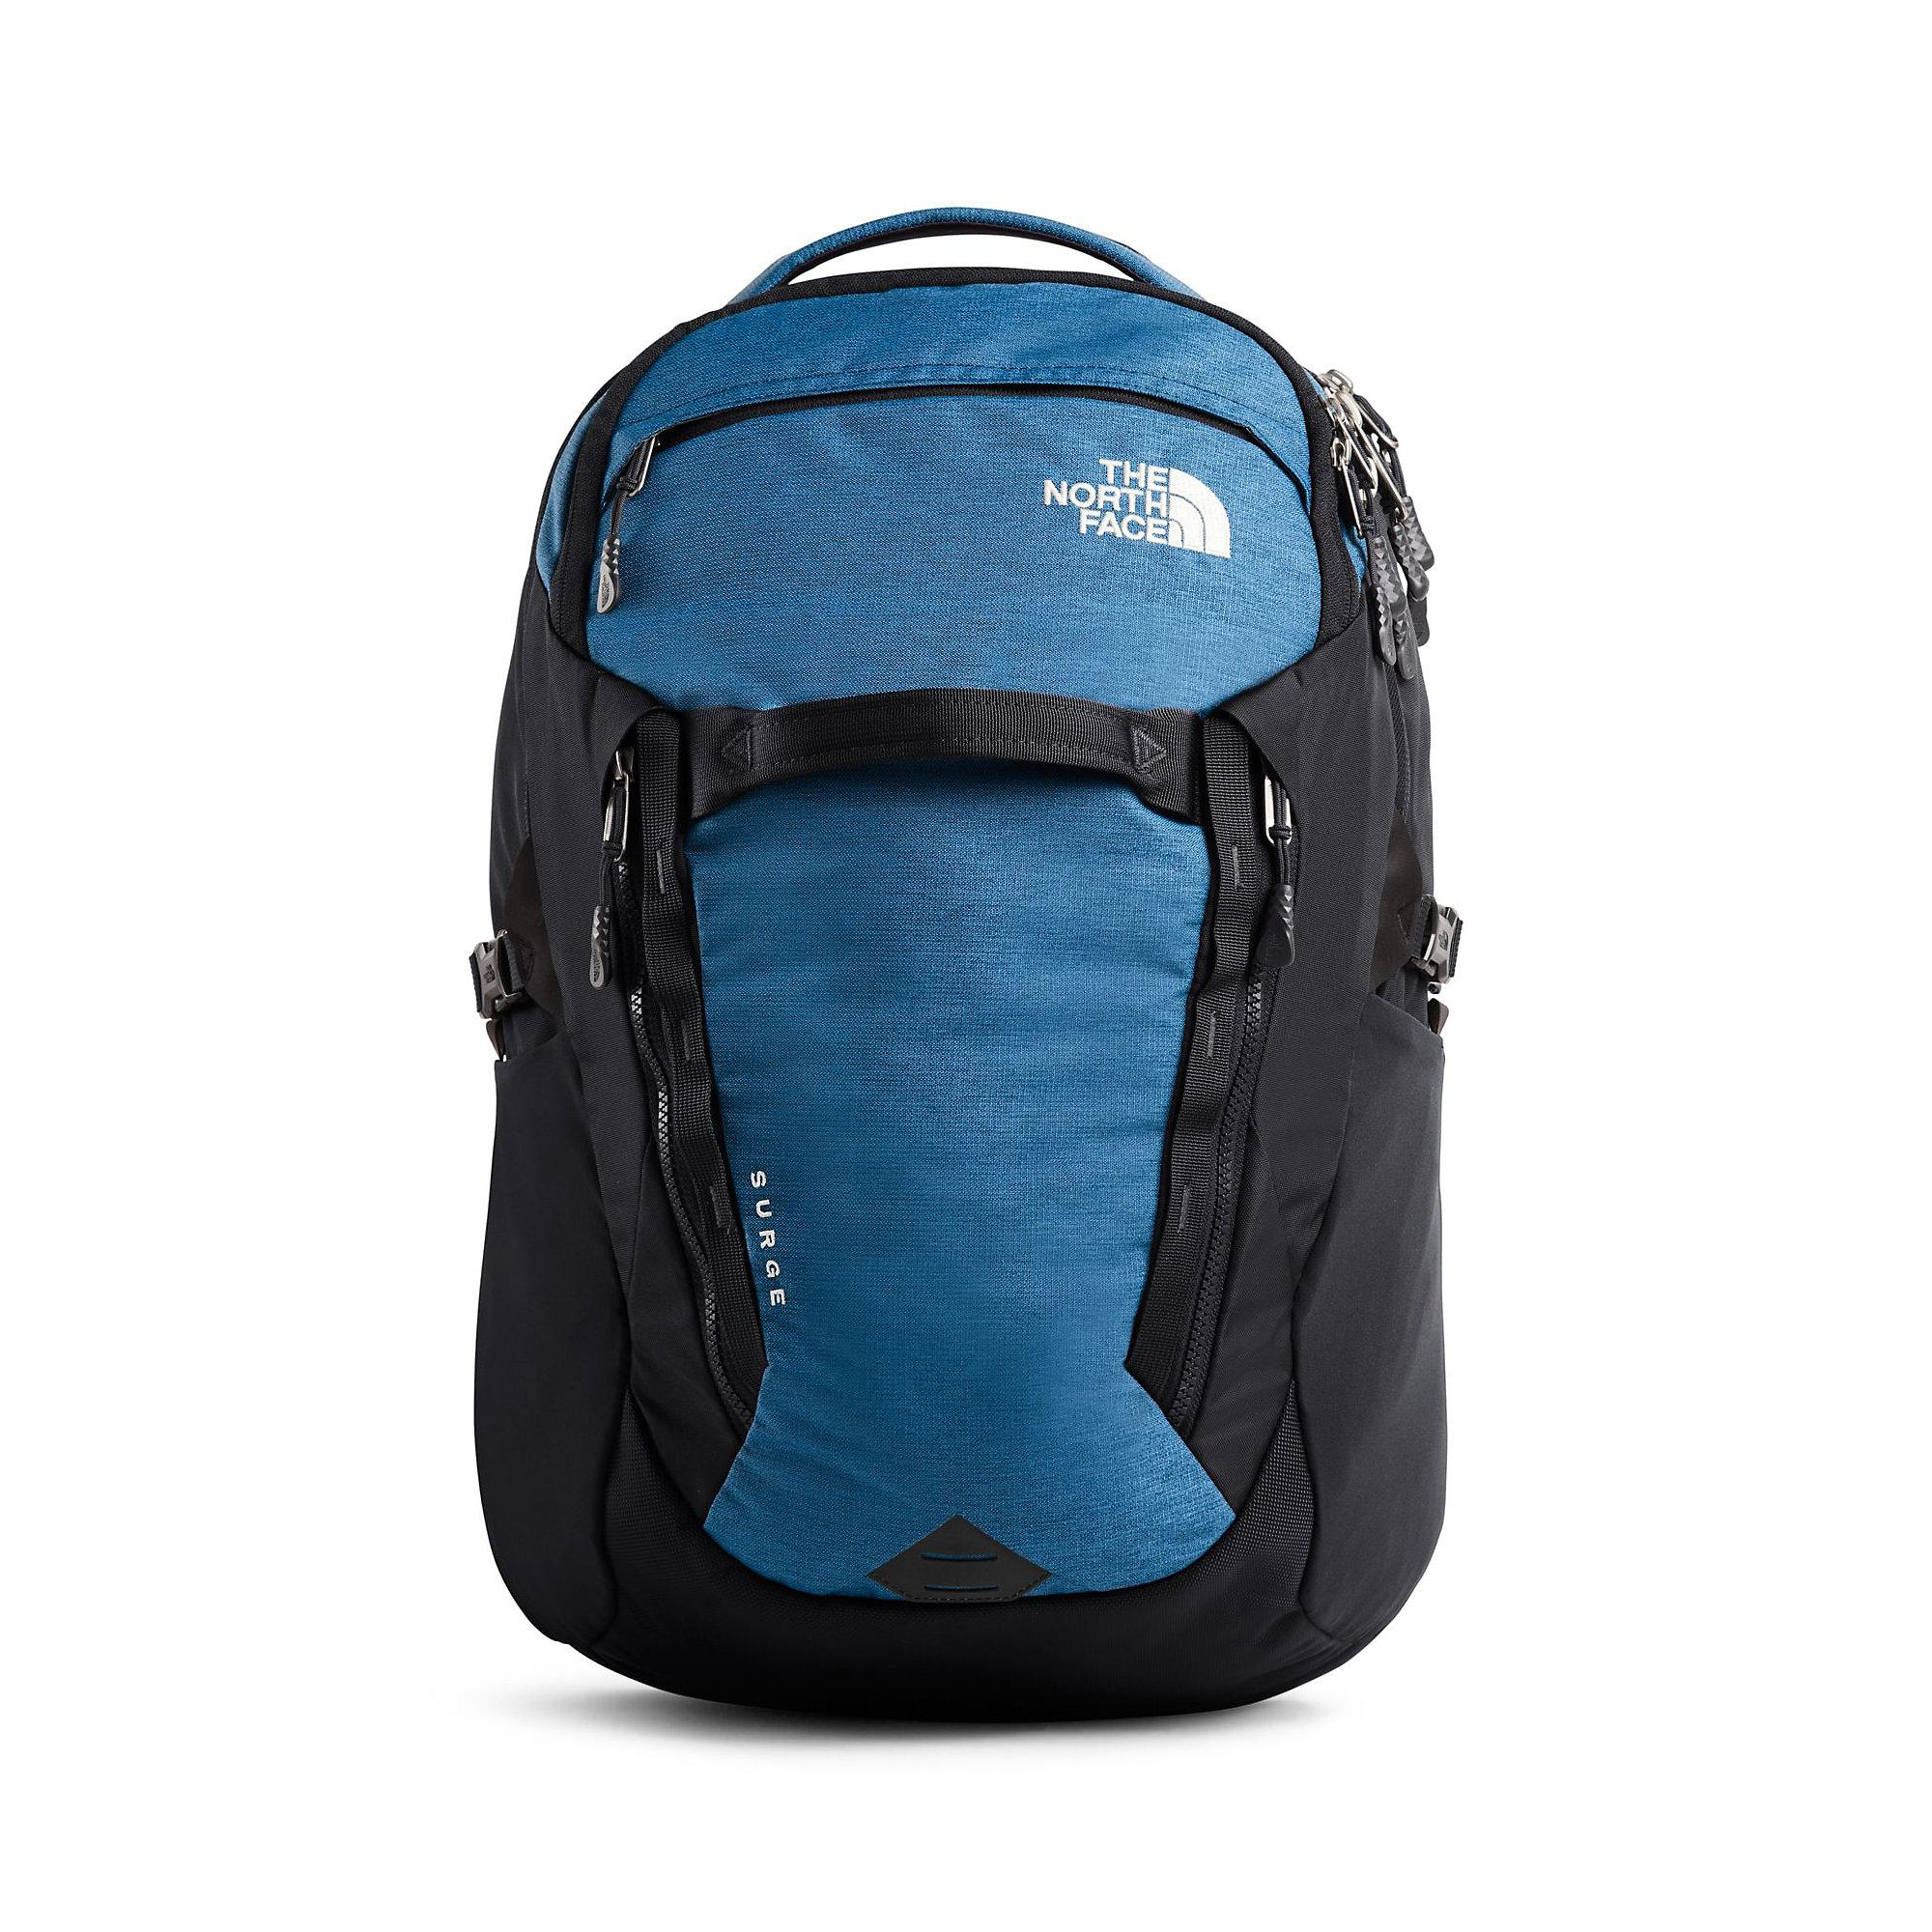 18ed23aac The North Face Surge Backpack in Blue - Lyst